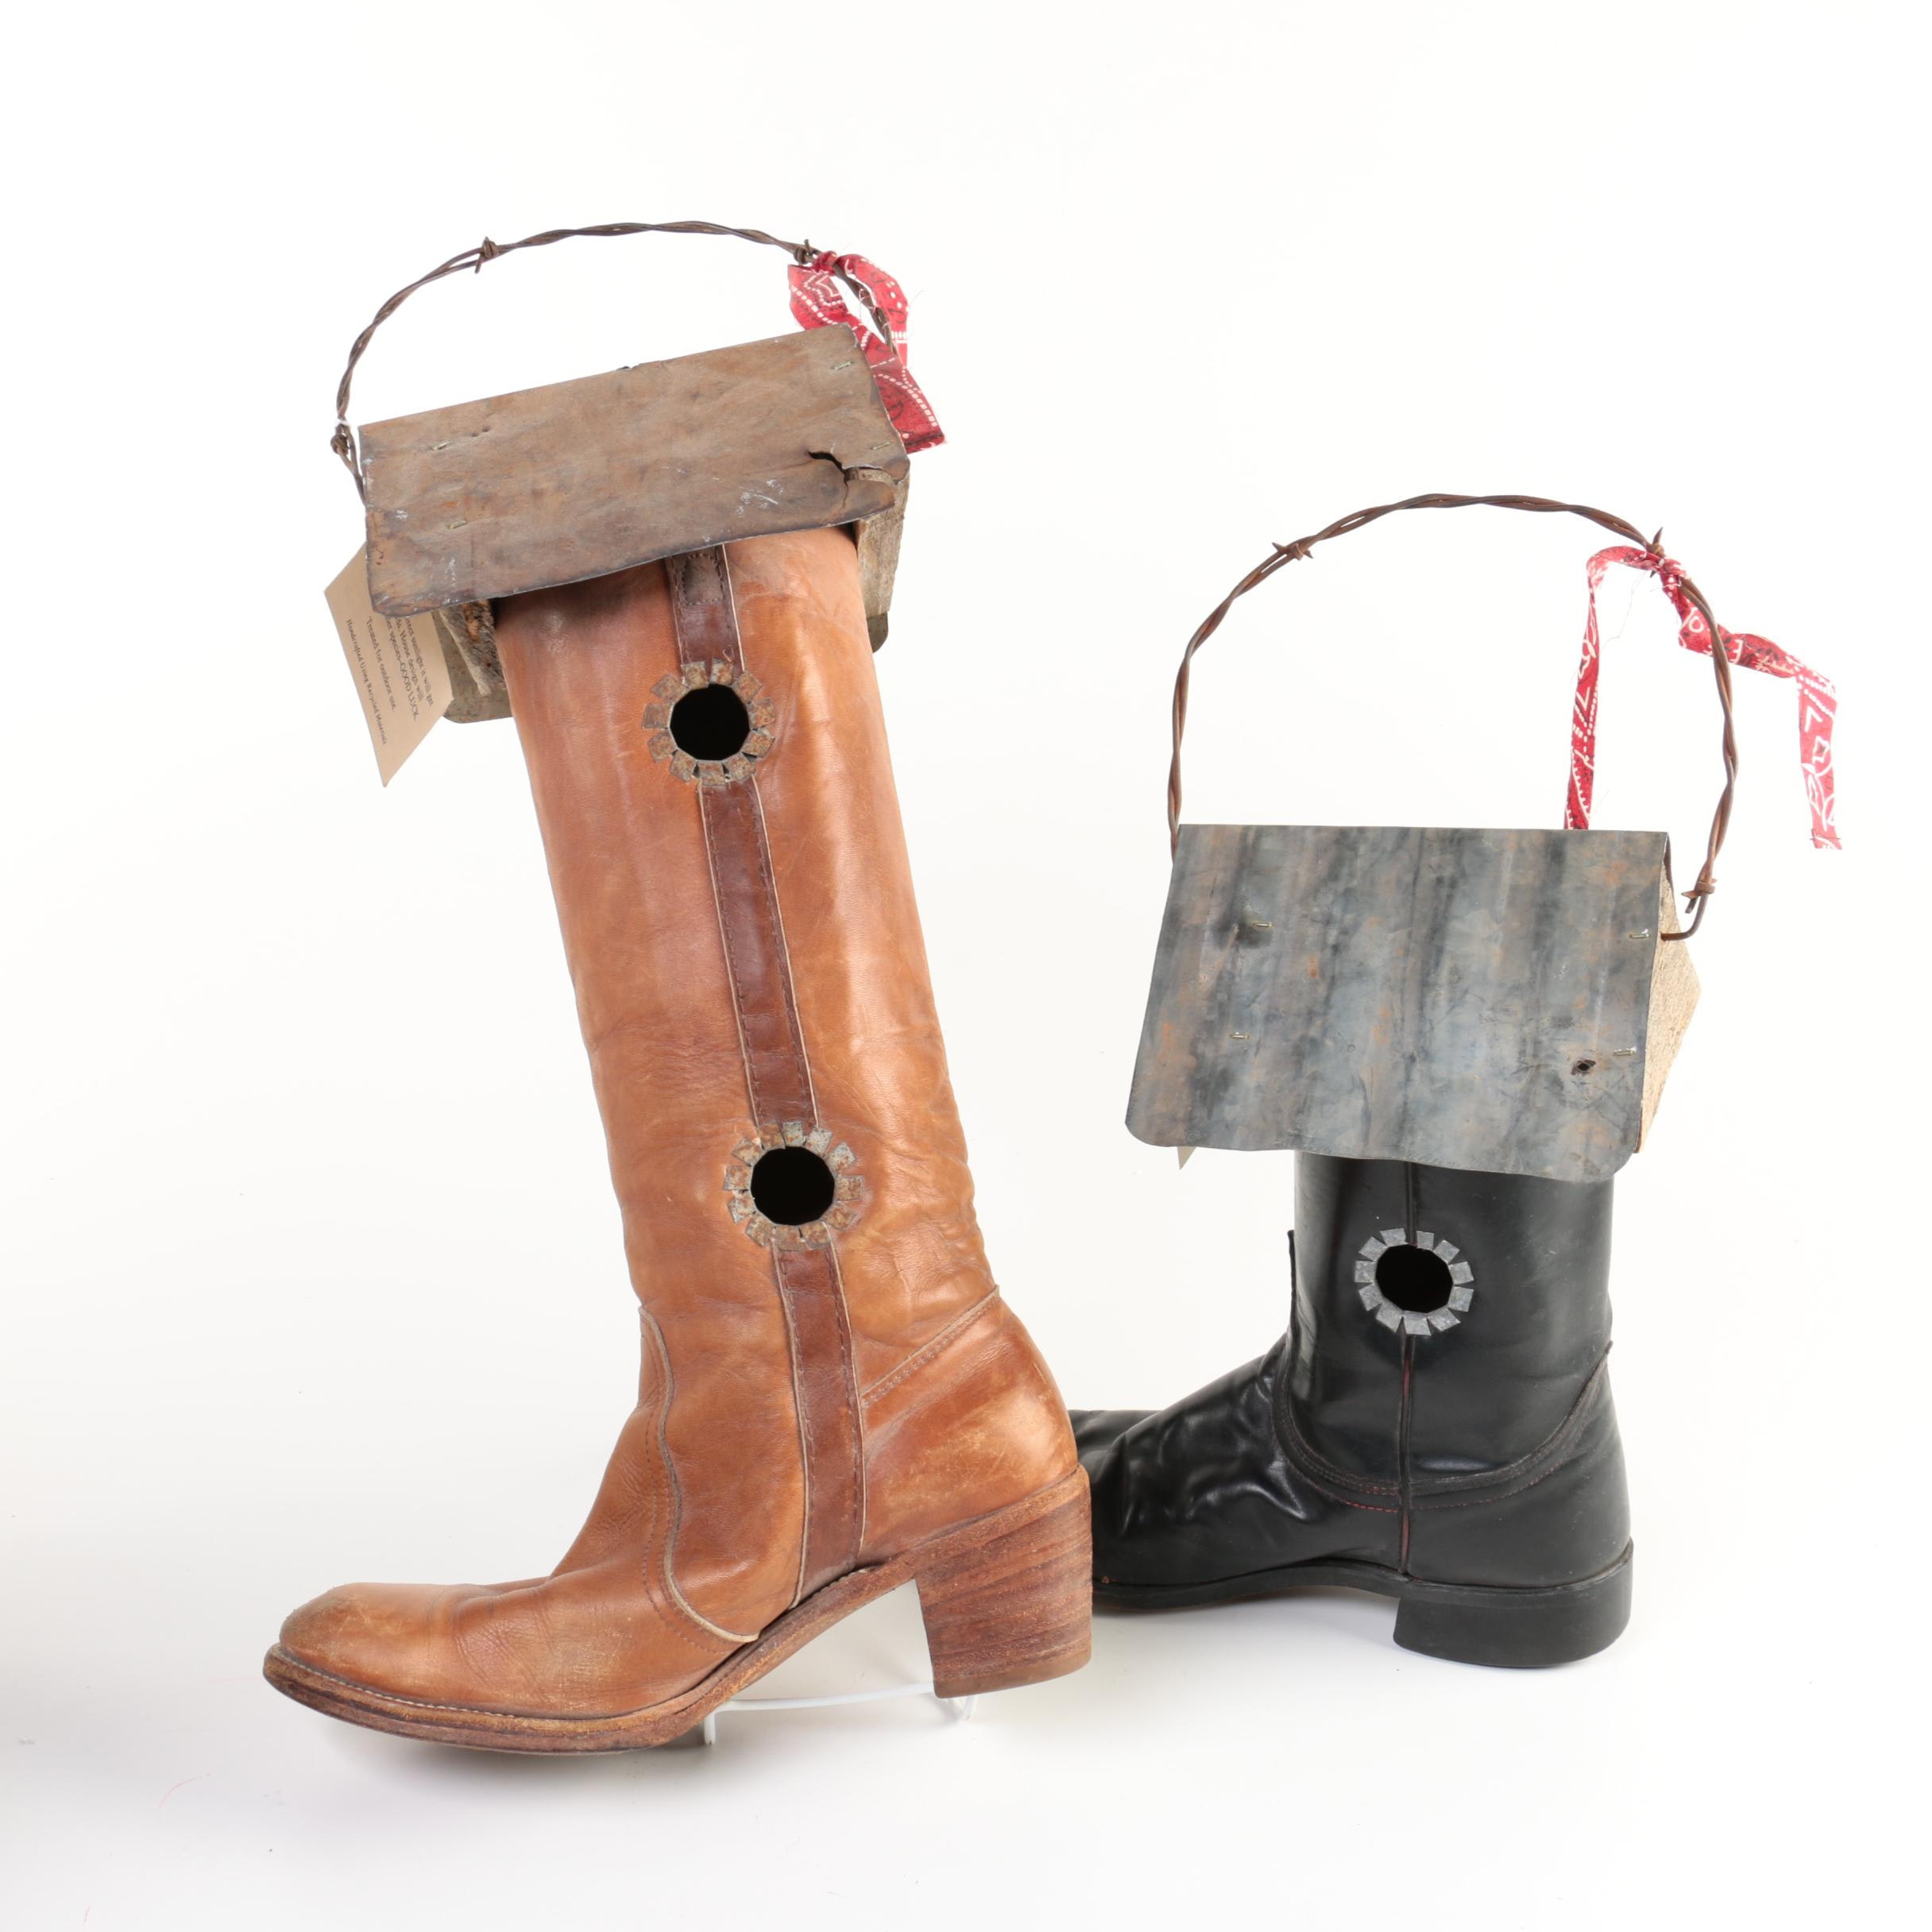 Give 'Em the Boot Recycled Leather Boot Birdhouses